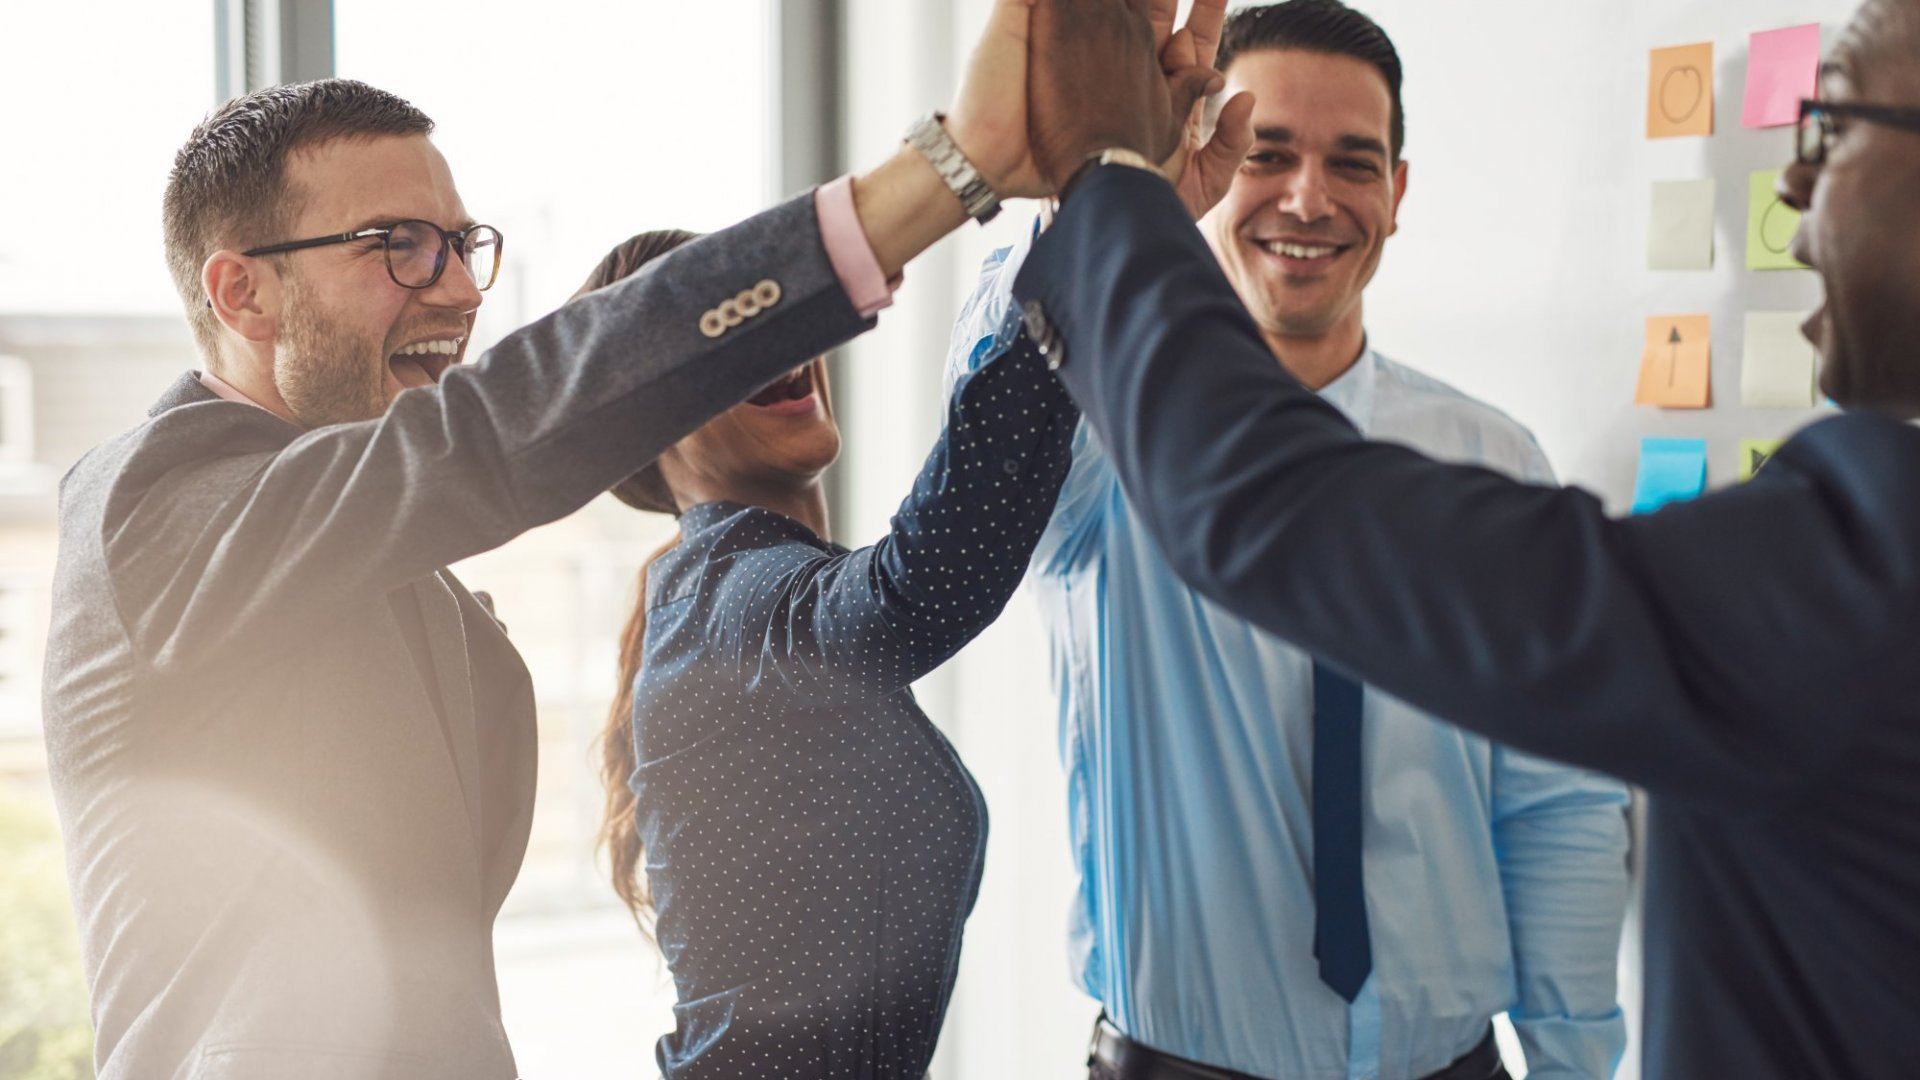 Here's how to navigate the fourth quarter in a way that keeps employees happy and maintains momentum.